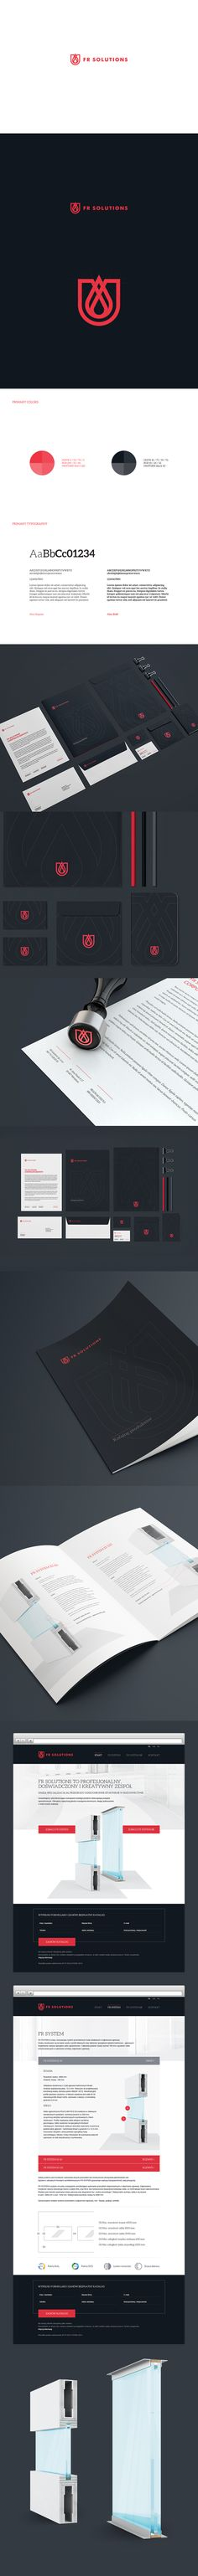 FR Solutions by Motyf, via Behance. A company specialising in fire resistant divisions used in construction.